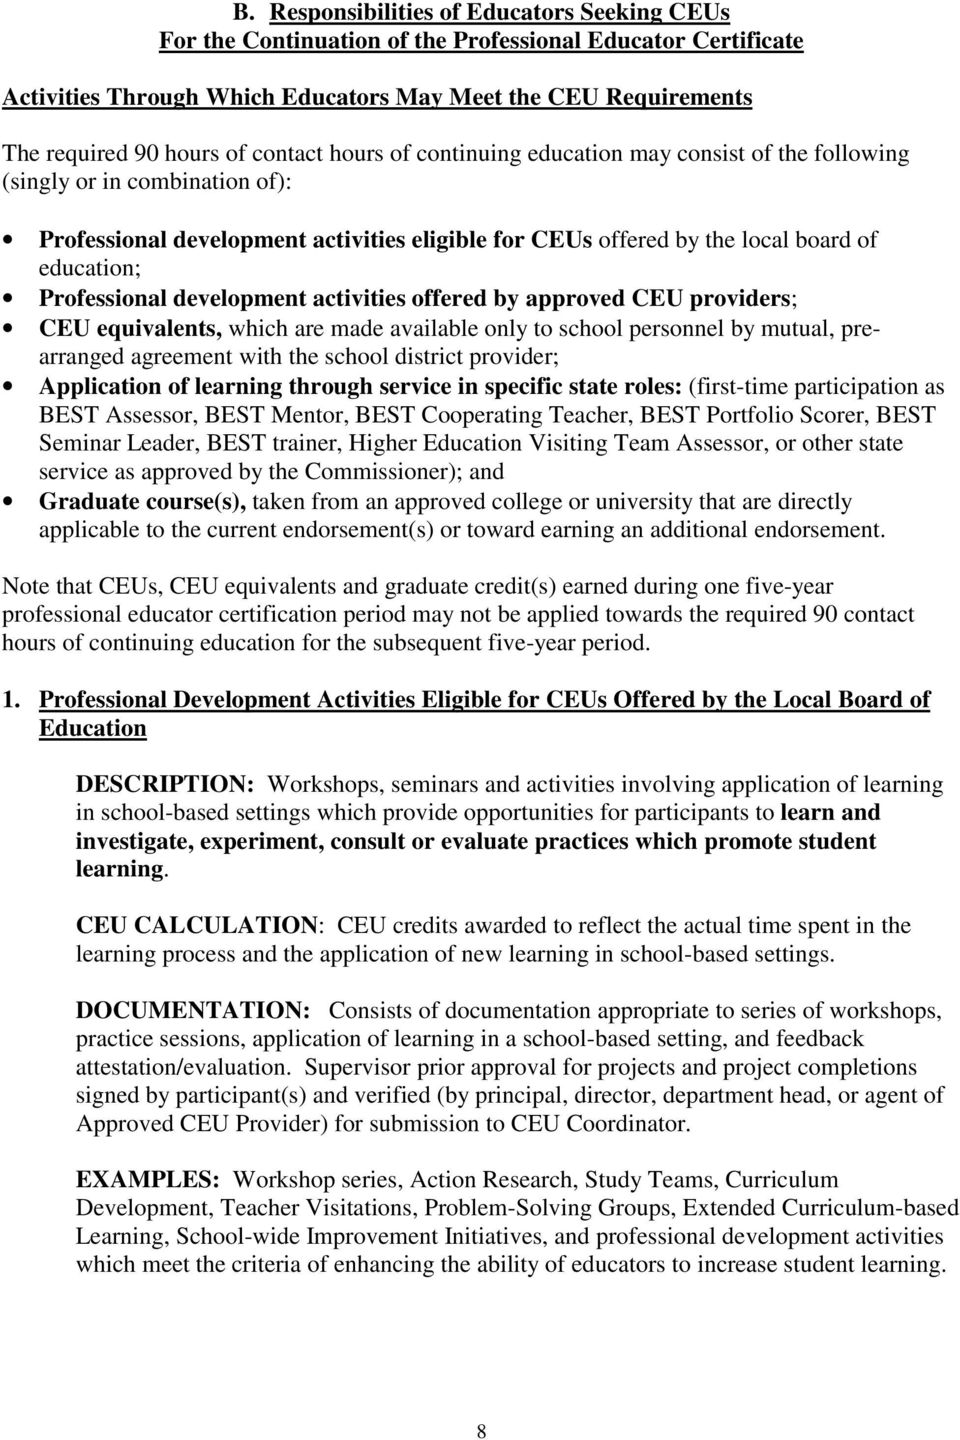 Professional development activities offered by approved CEU providers; CEU equivalents, which are made available only to school personnel by mutual, prearranged agreement with the school district